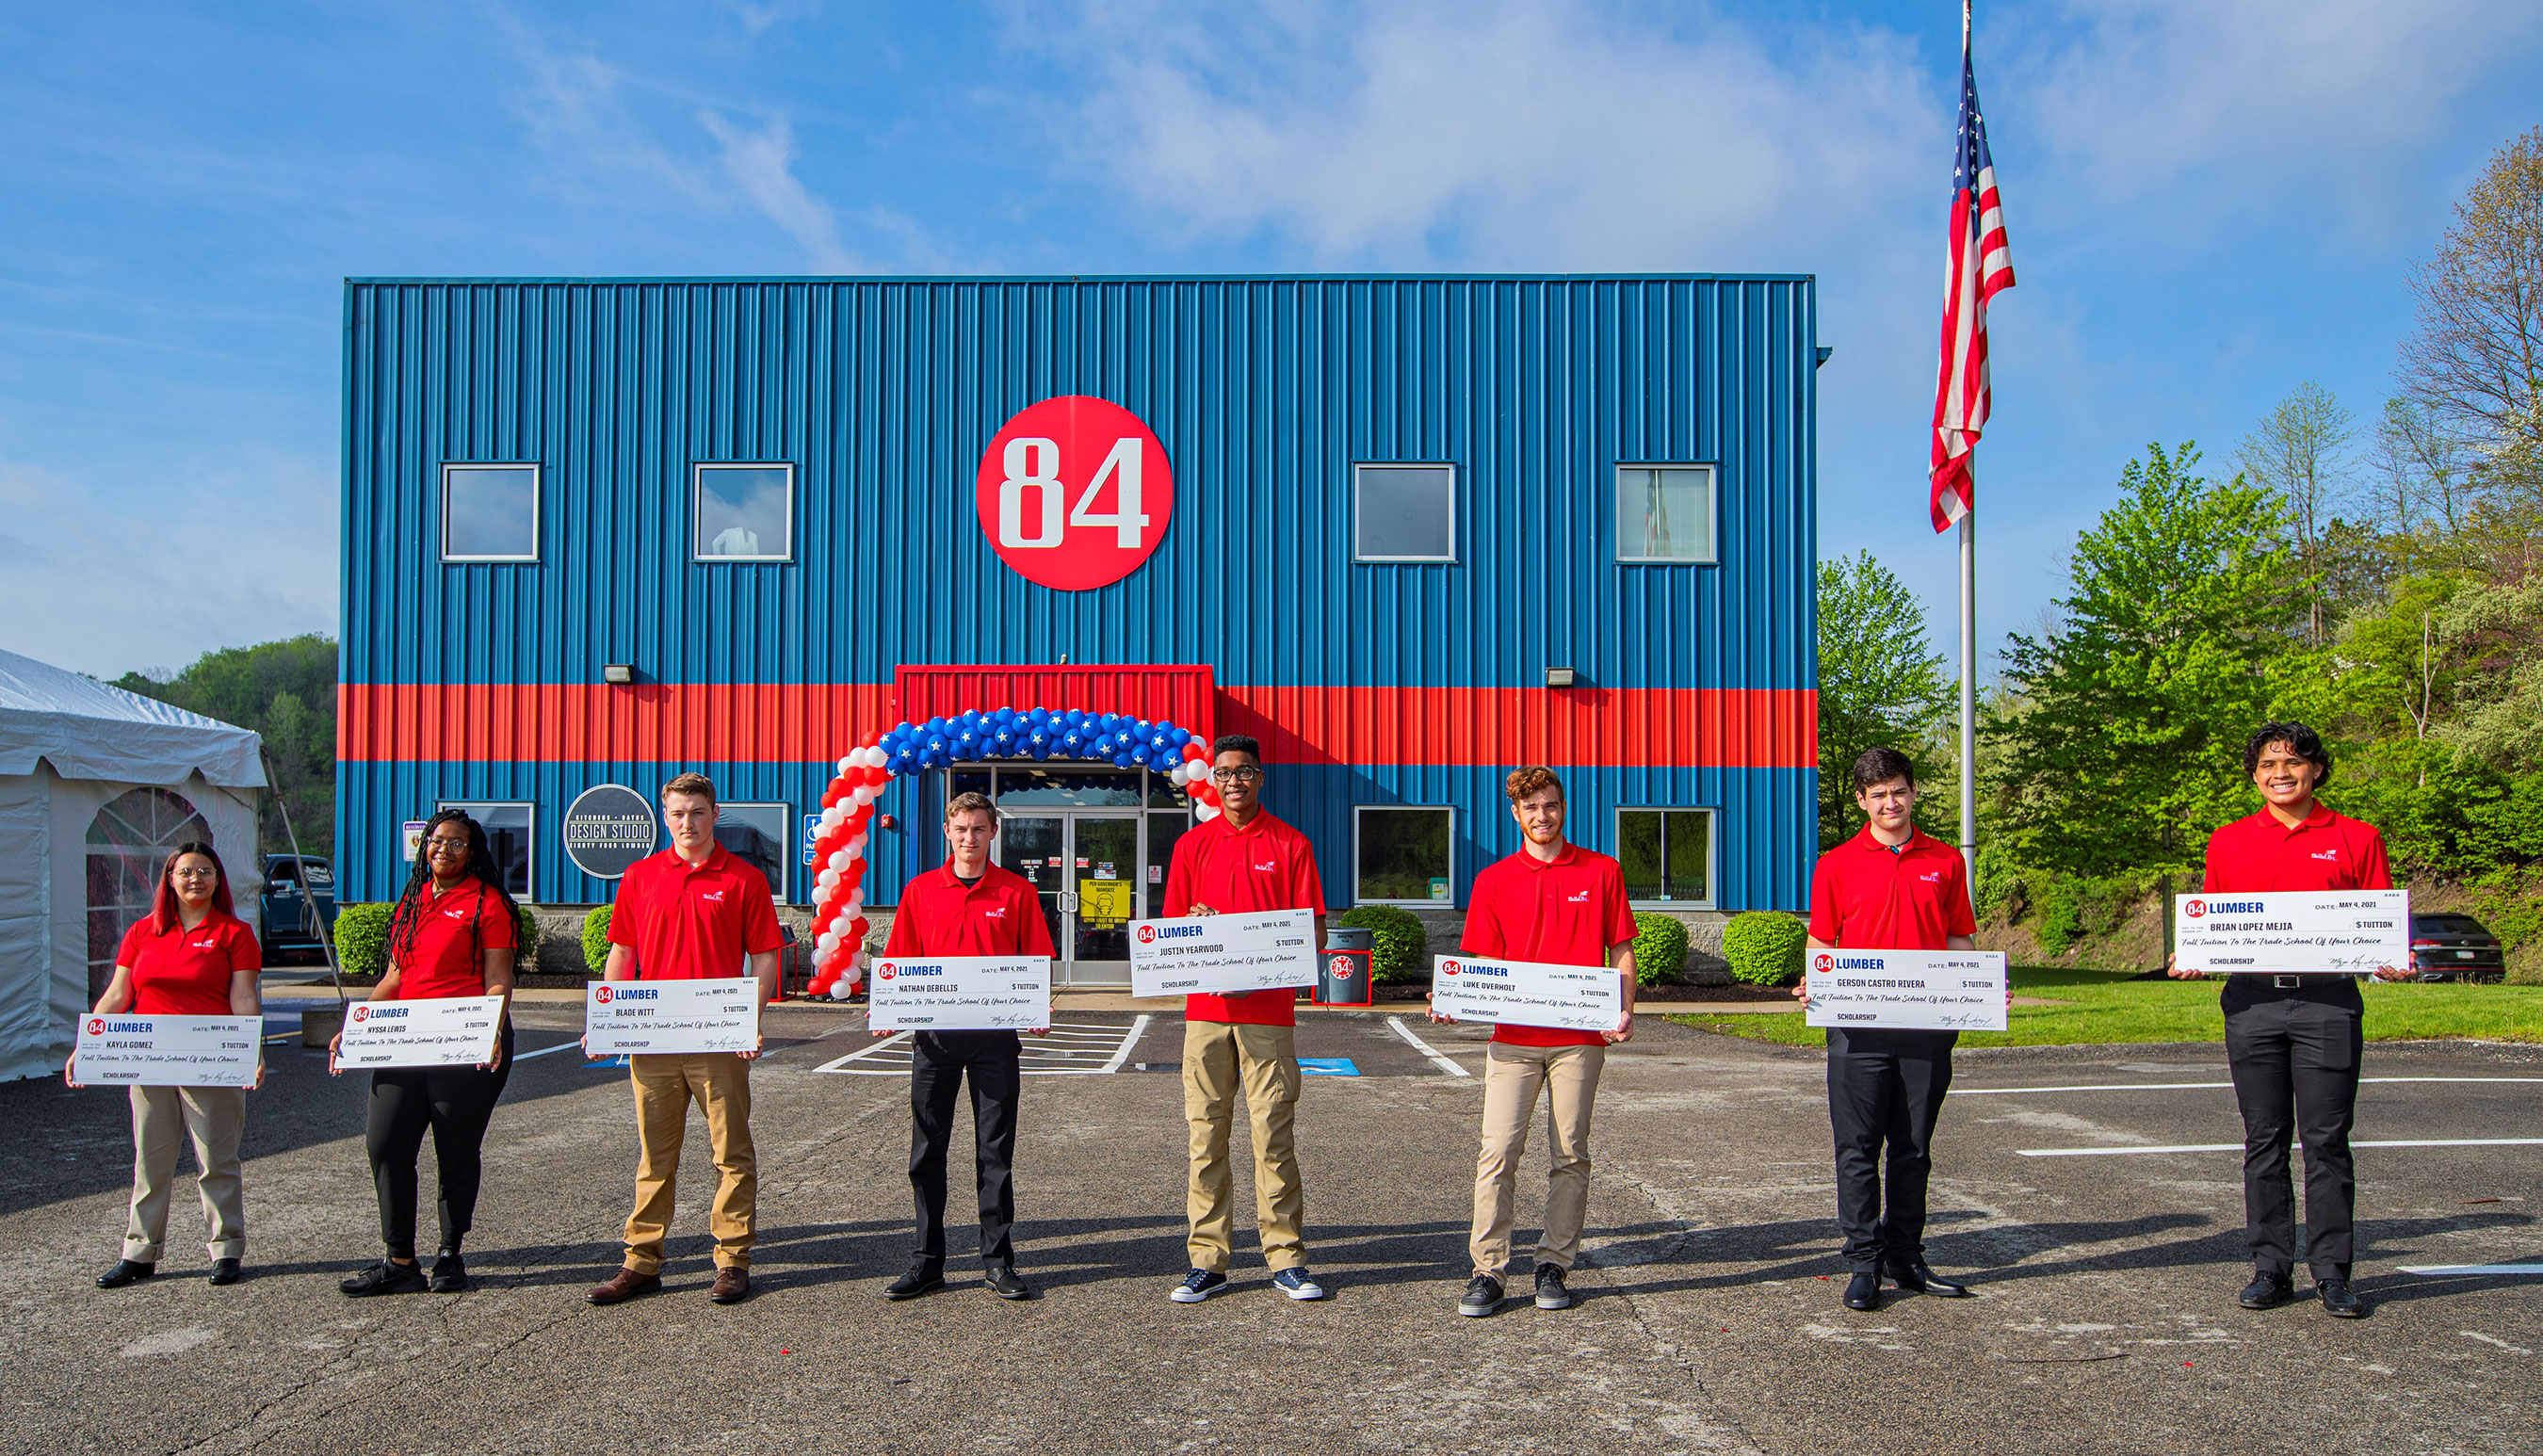 84 Lumber celebrated high school seniors entering the skilled trades and surprised 10 students with scholarships, totaling $50,000, towards the trade school of their choosing.